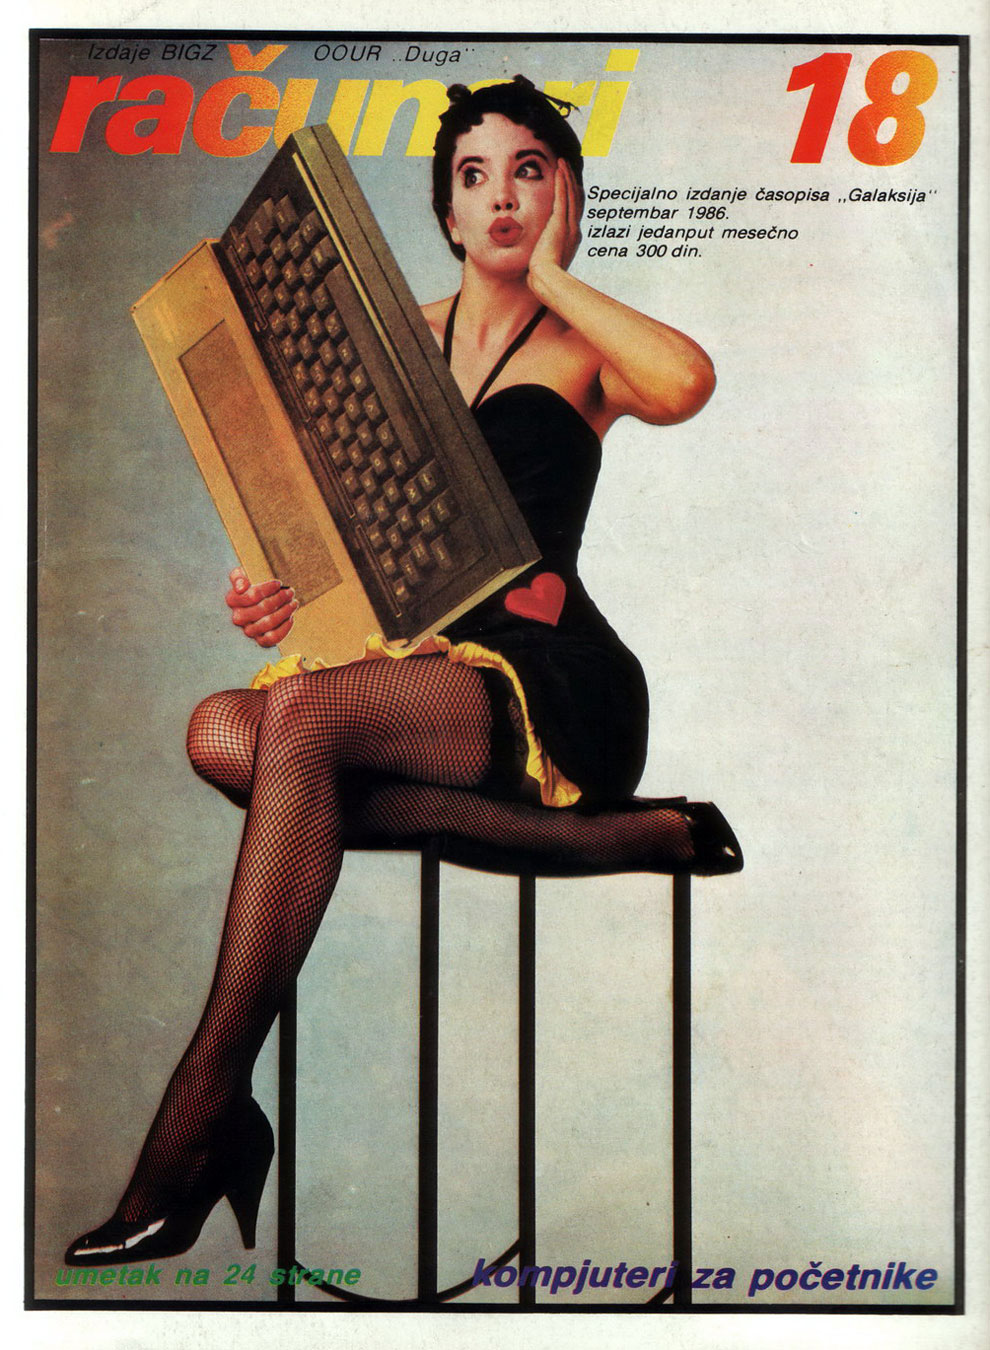 vintage-yugoslavian-computer-magazine-cover-girls-of-the-1980s-90s 3-3610